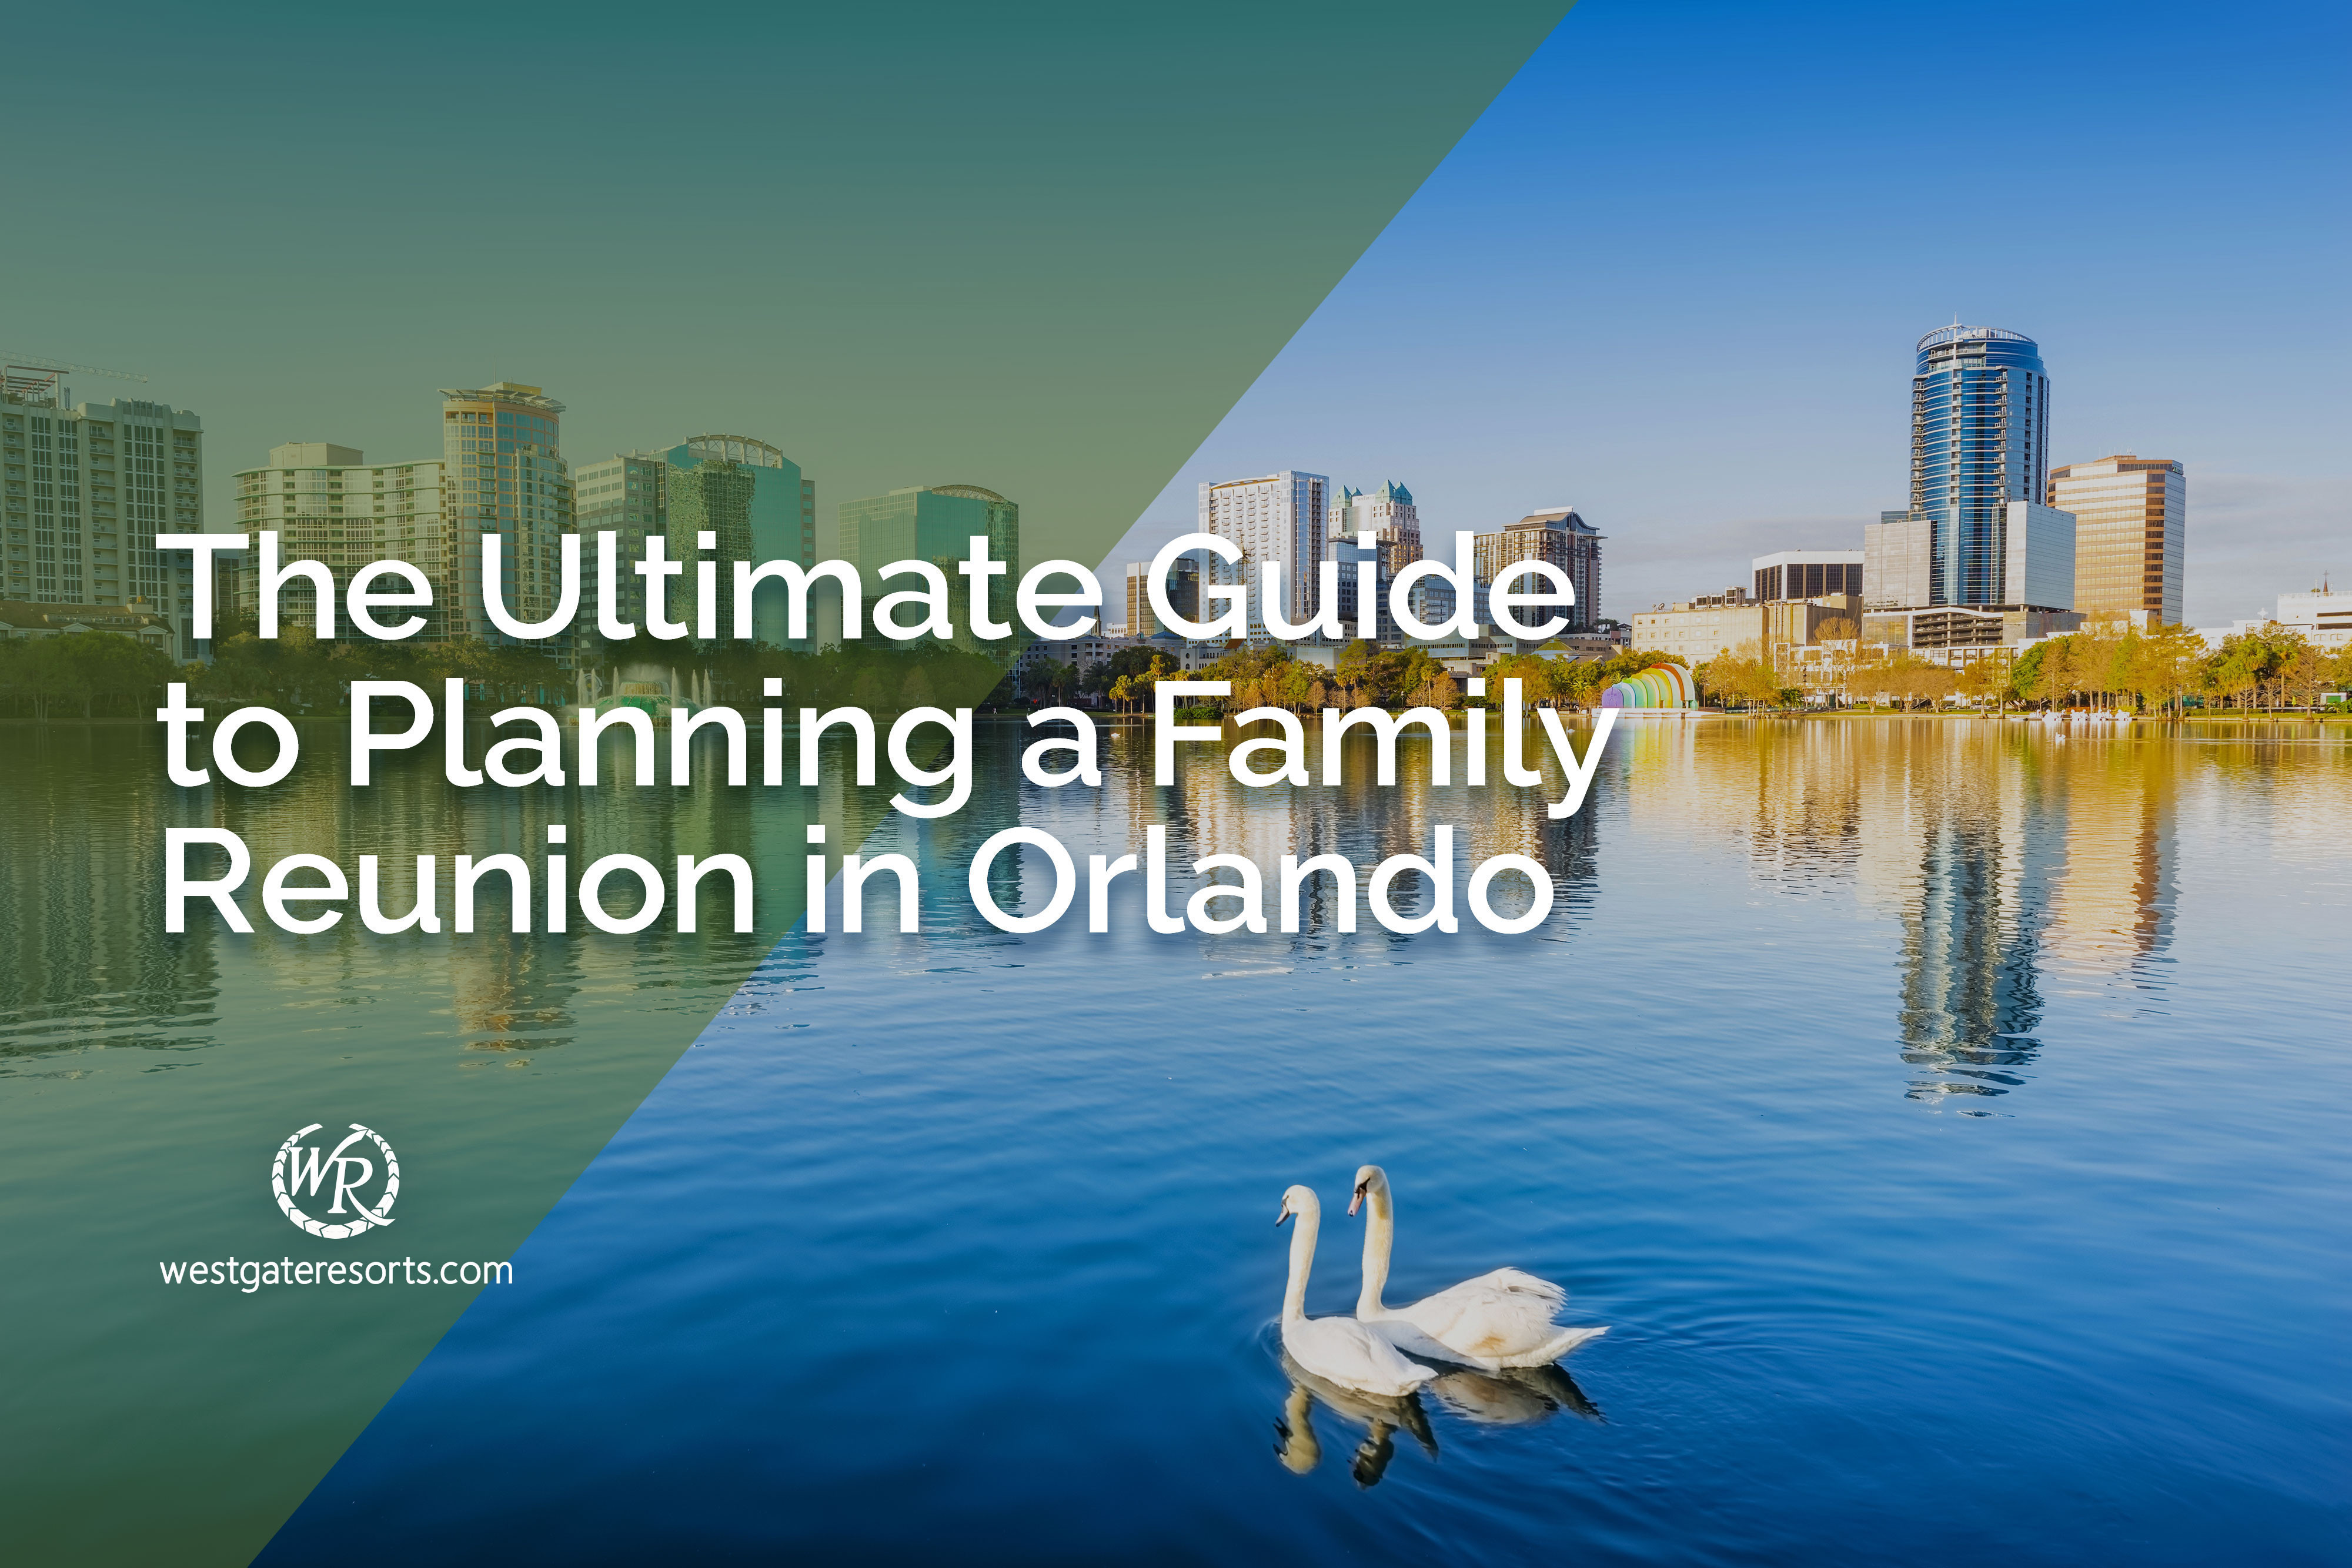 The Ultimate Guide to Planning a Family Reunion in Orlando